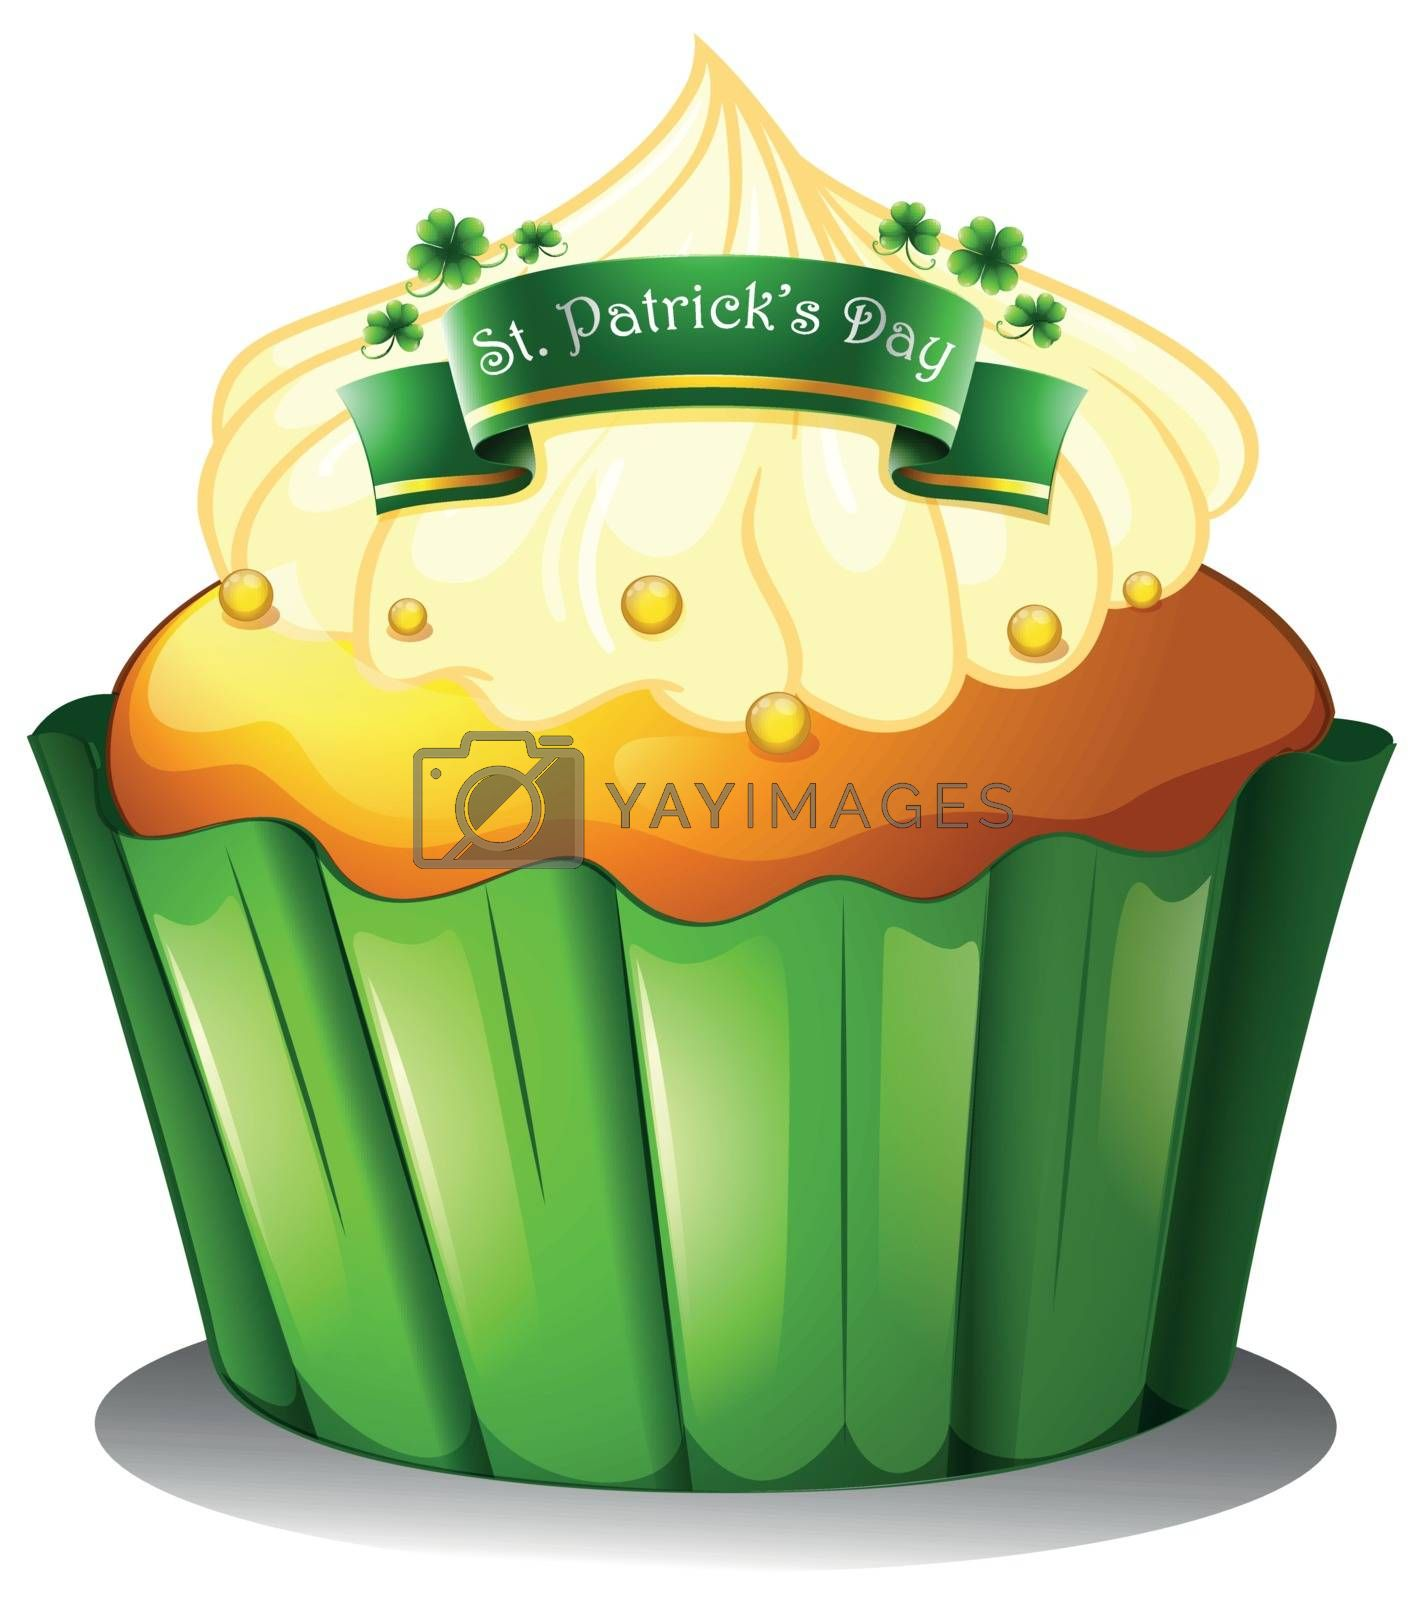 Illustration of the cupcake for the celebration of St. Patrick's day on a white background